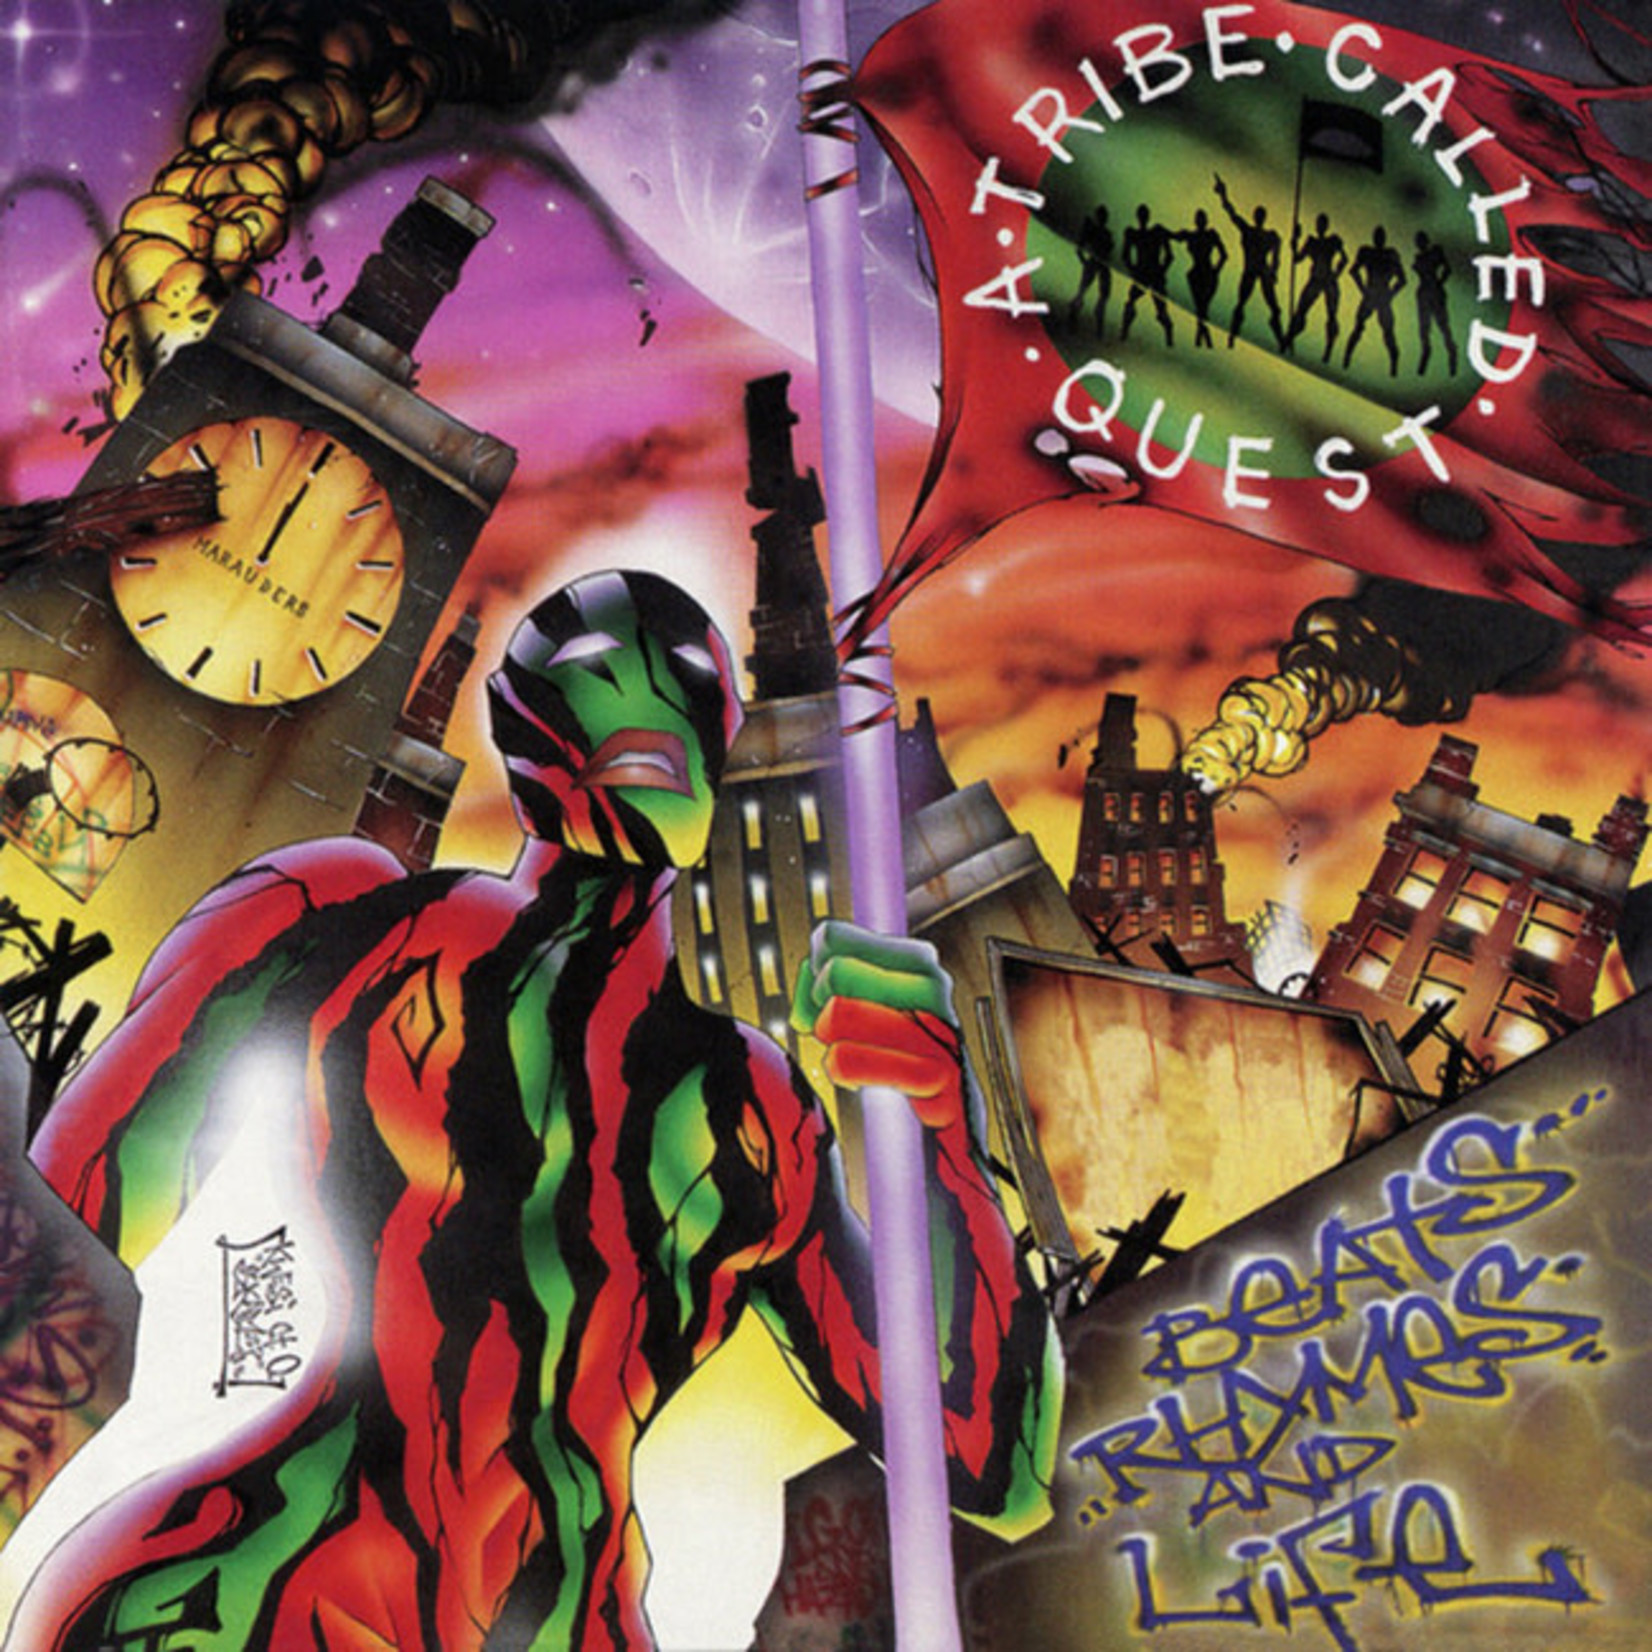 [New] A Tribe Called Quest: Beats, Rhymes & Life (2LP)